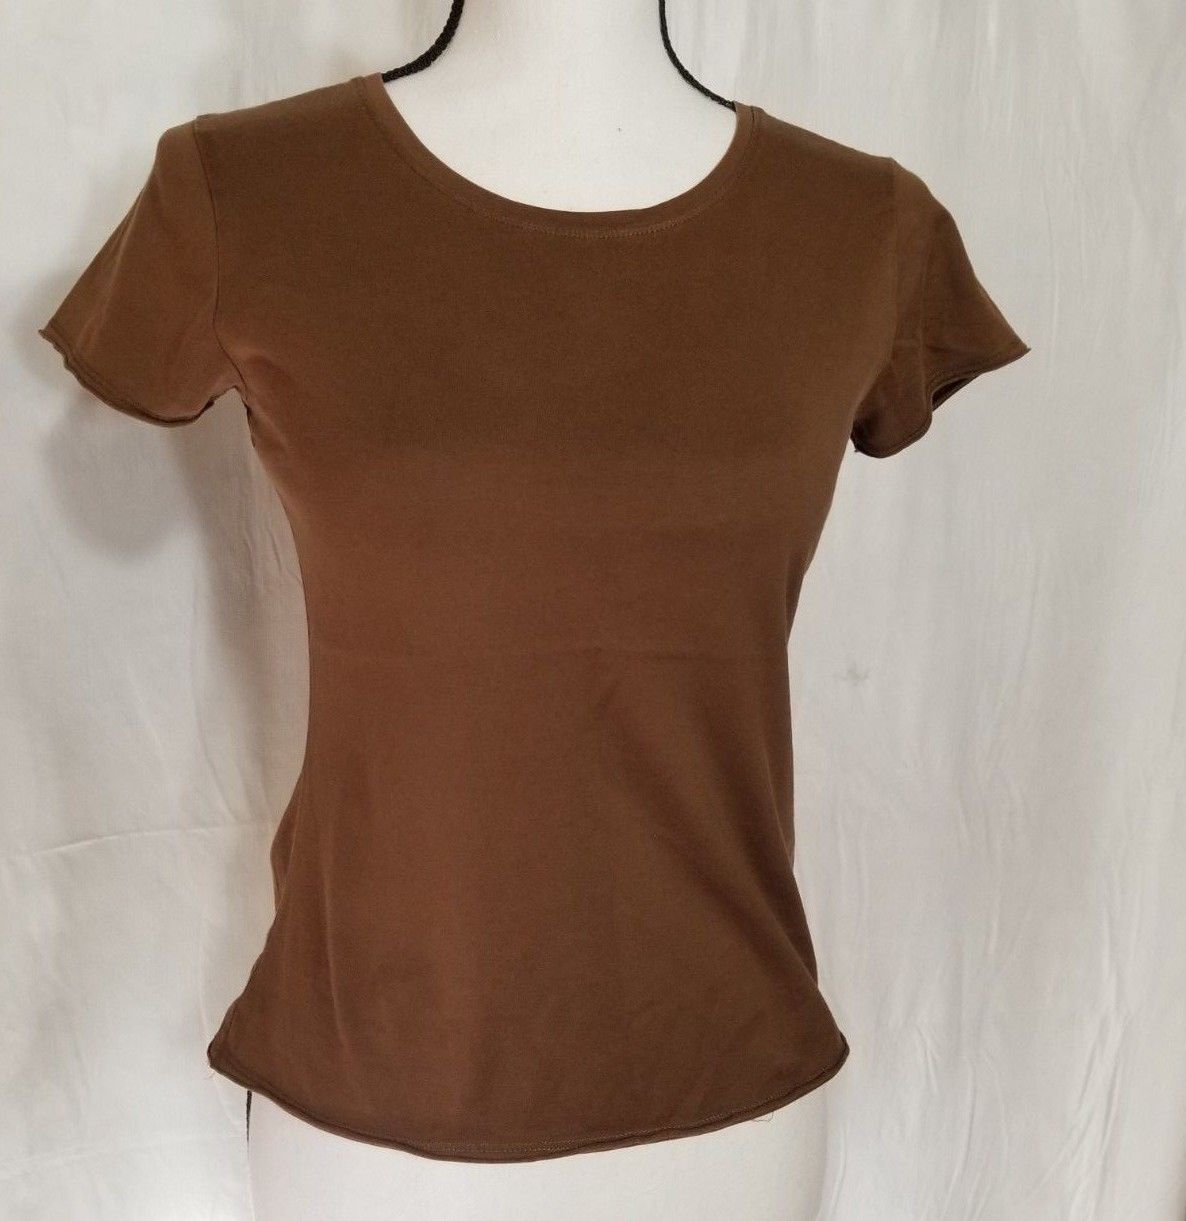 ba195d82 #Women – J Jill Women's XS Cap Sleeve Brown Pullover T-Shirt Top Fitted Tee